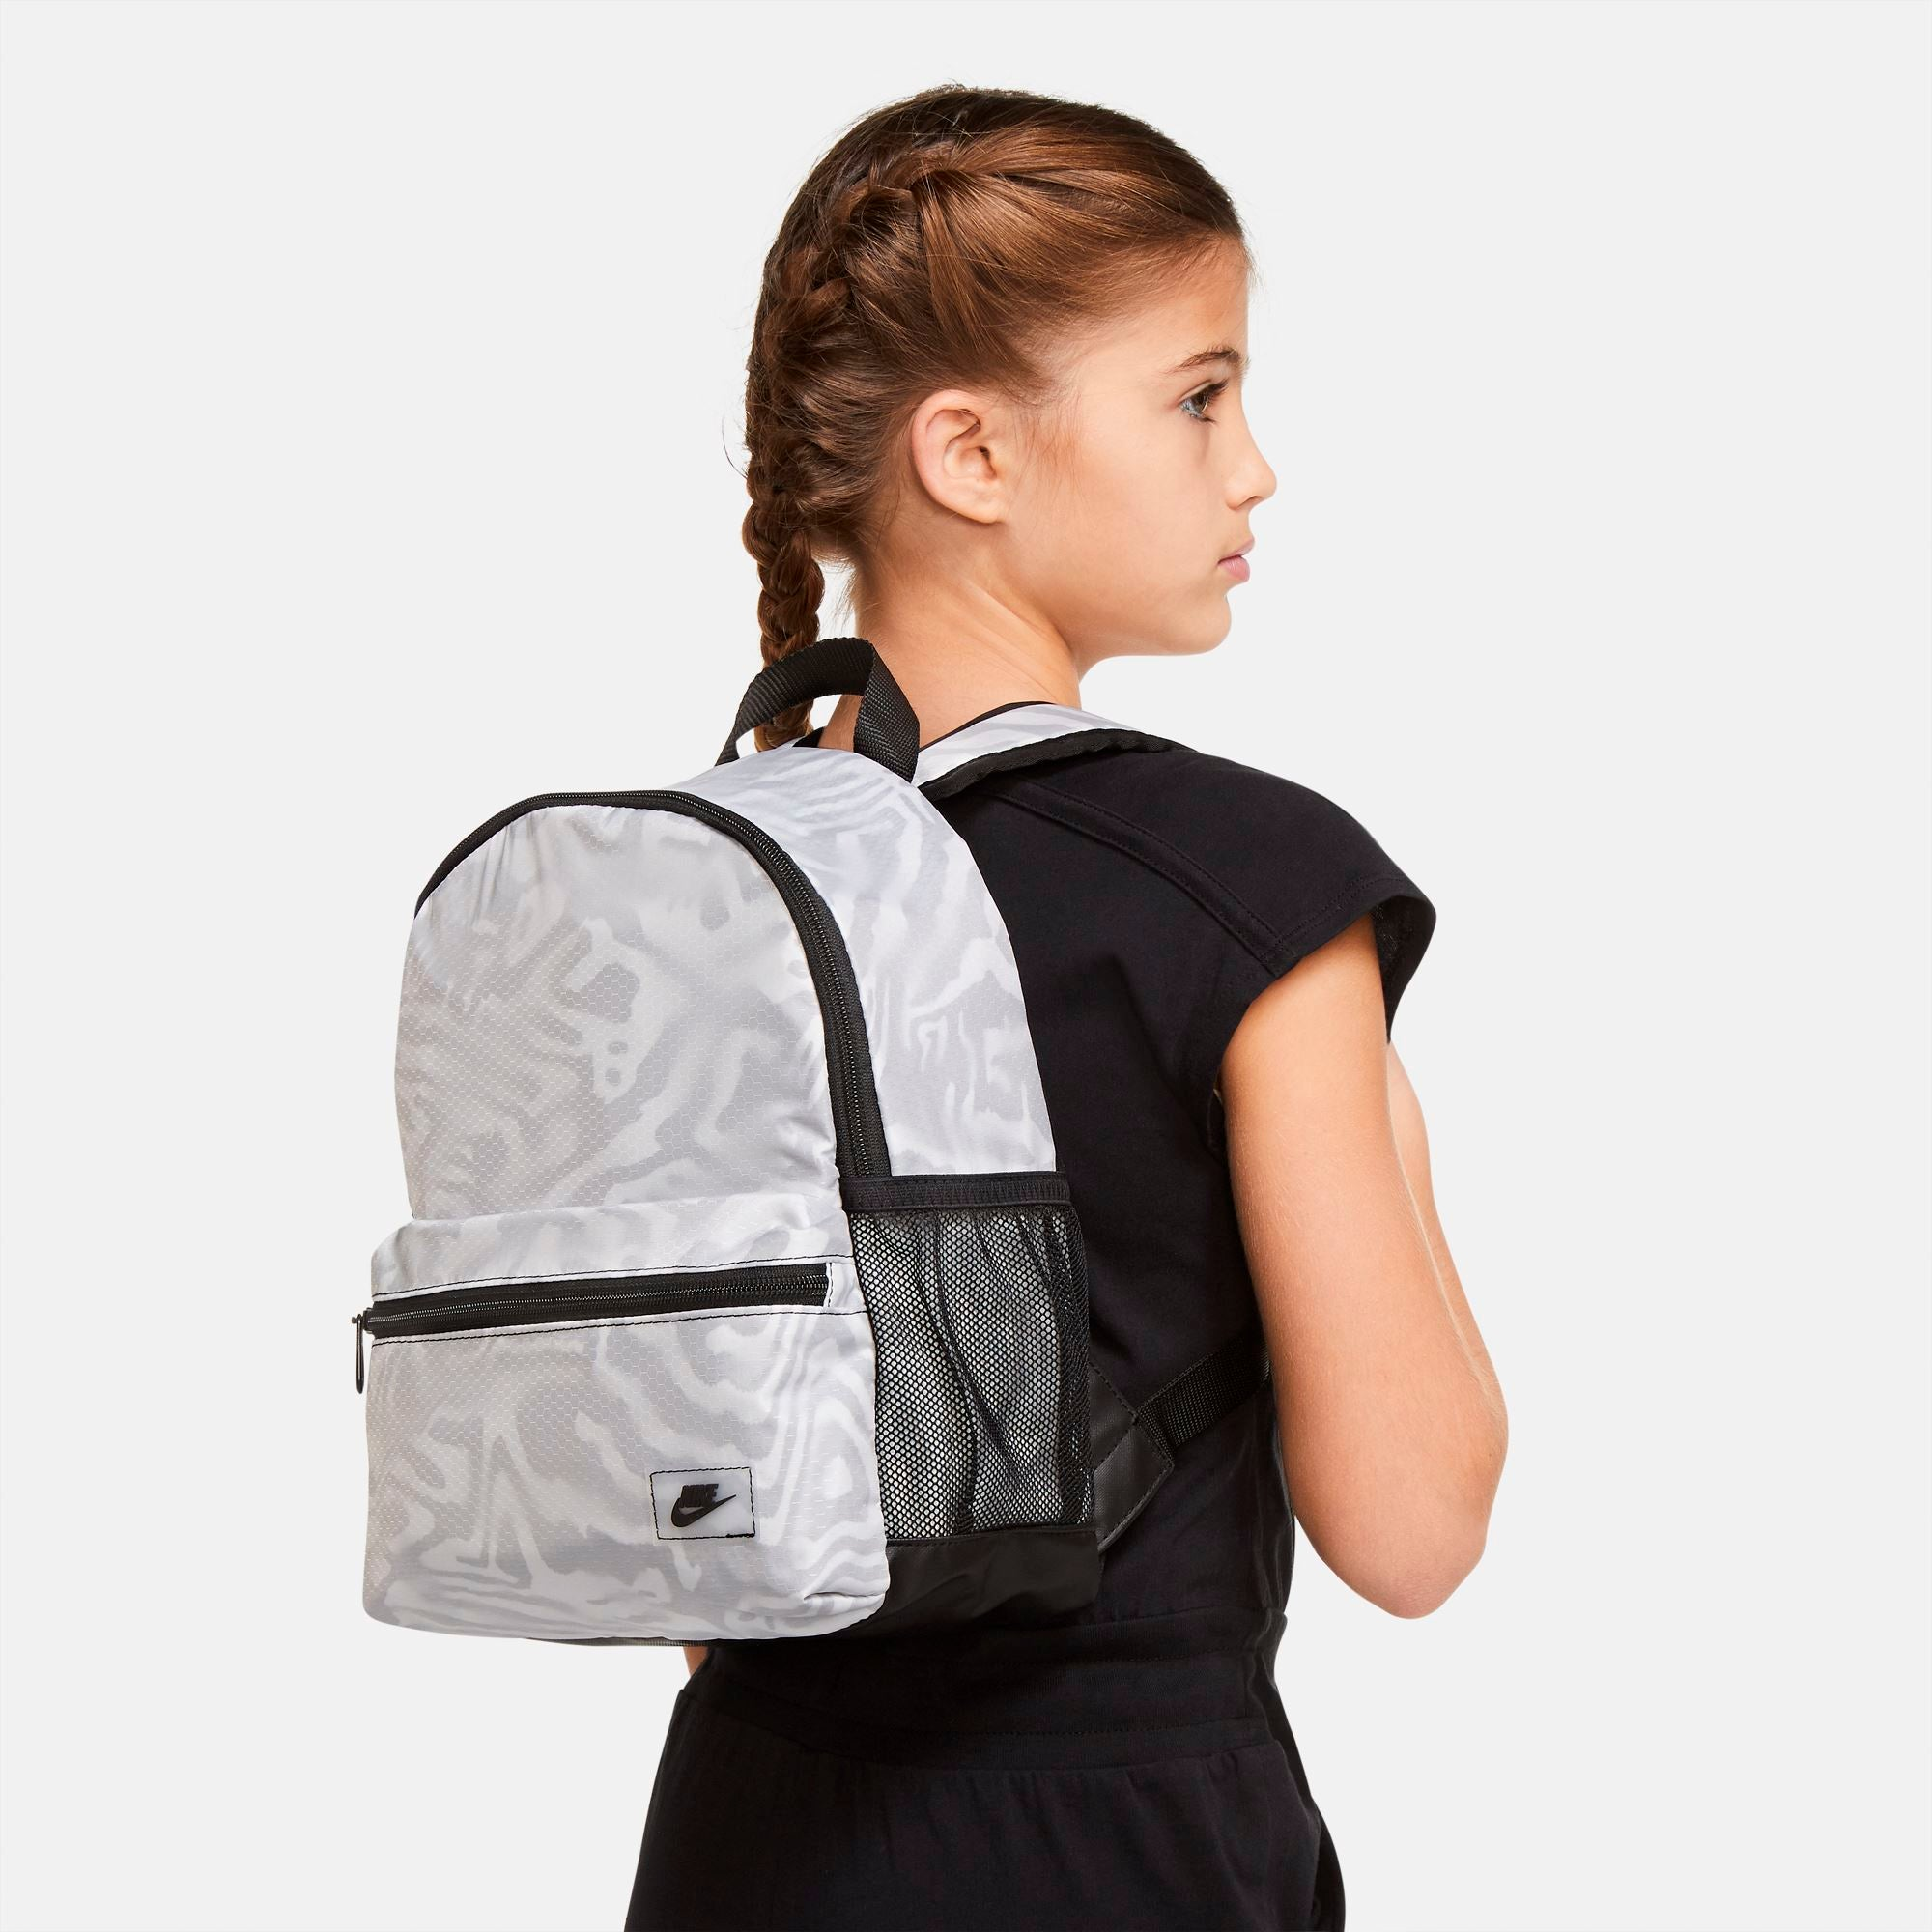 Nike Brasilia JDI Mini Backpack - Black/White/Black SP-Accessories-Bags Nike